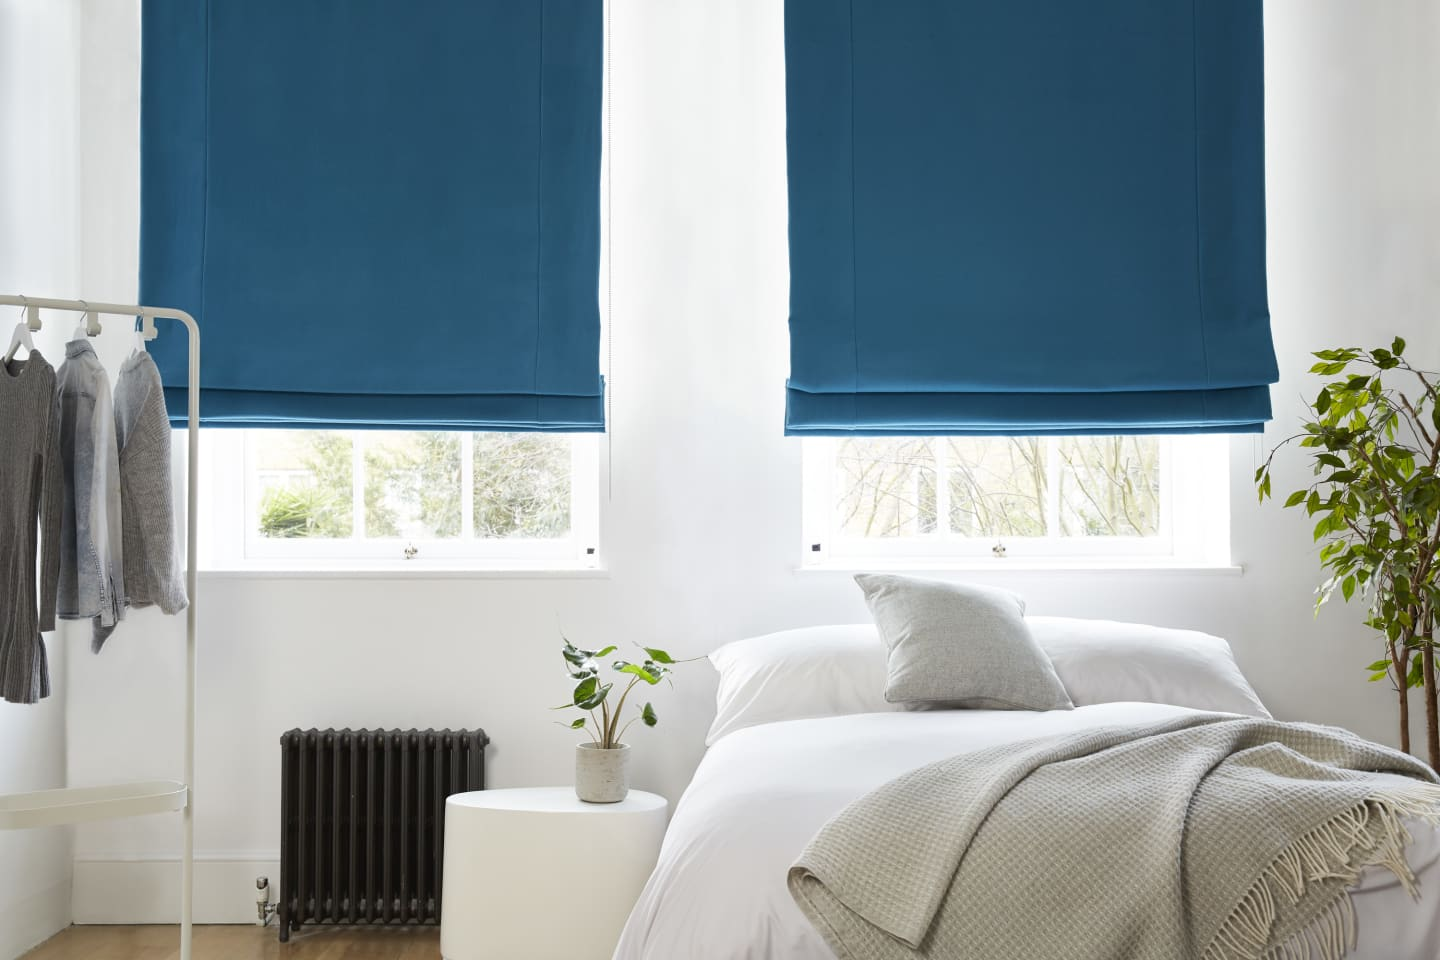 White bedroom with blue blinds